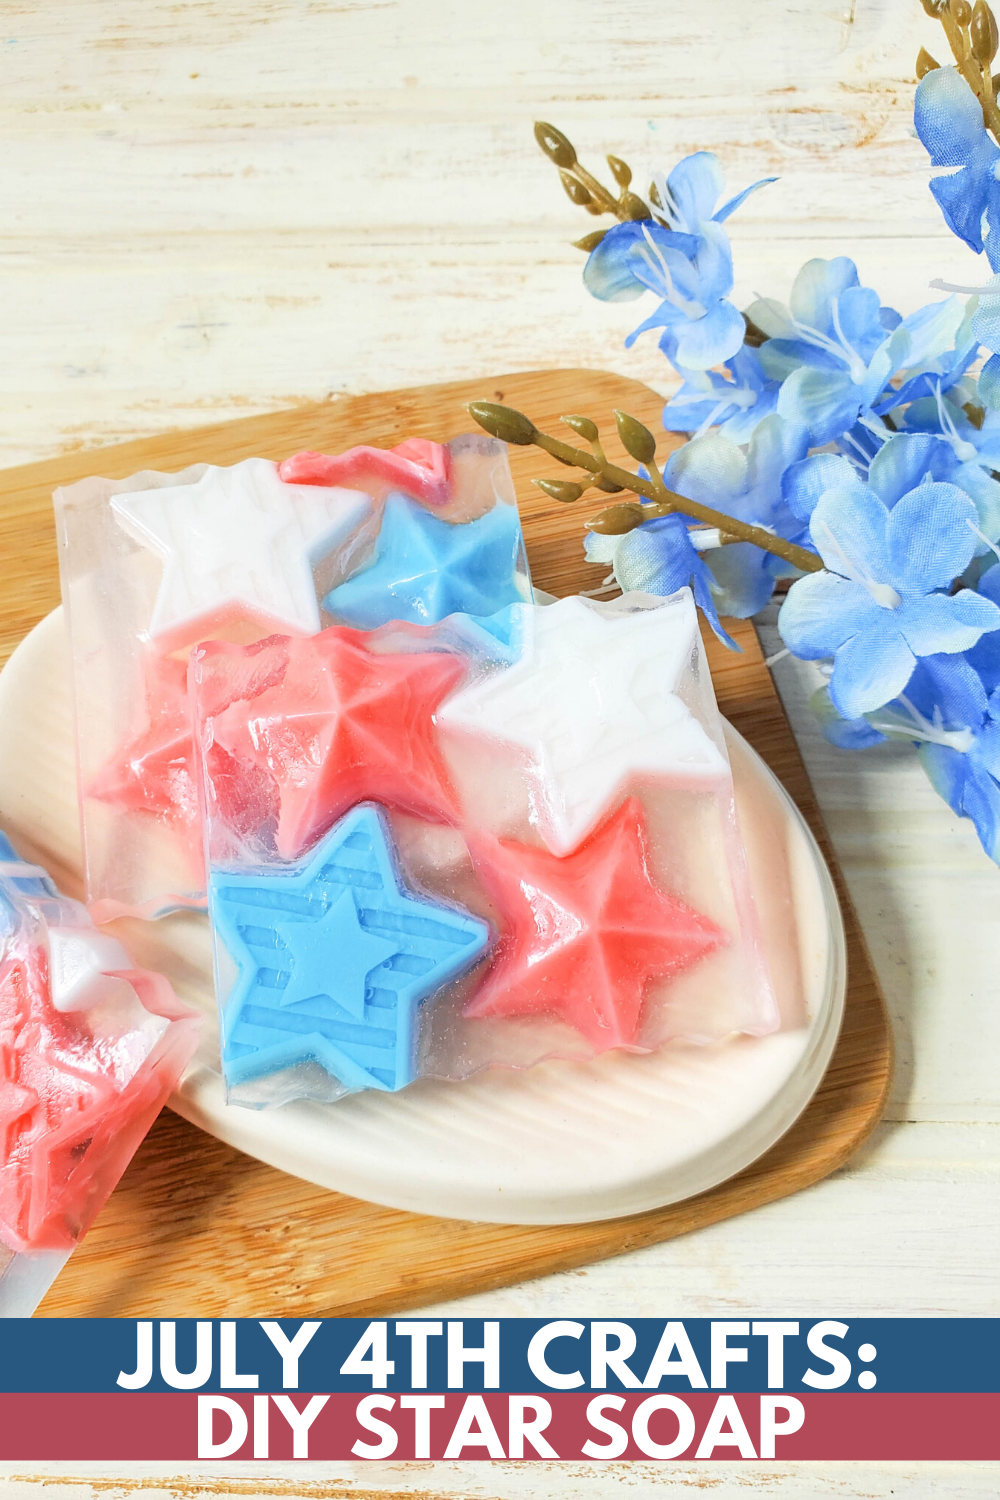 How to Make Soap: July 4th Star Soap DIY